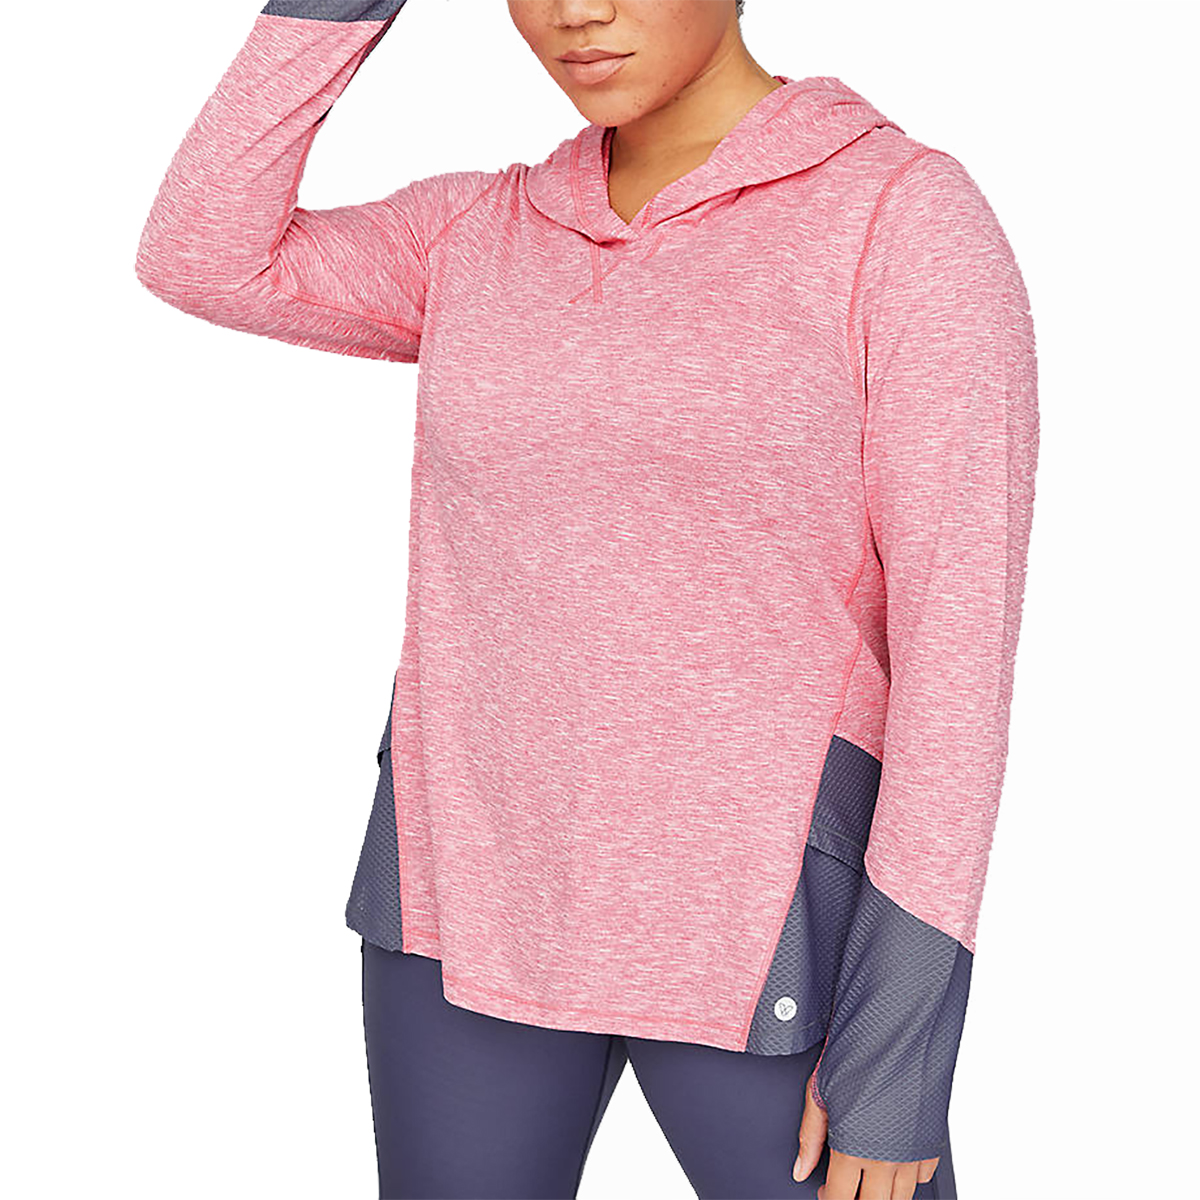 Best Hoodie: Lane Bryant Wicking Active Hooded Pullover